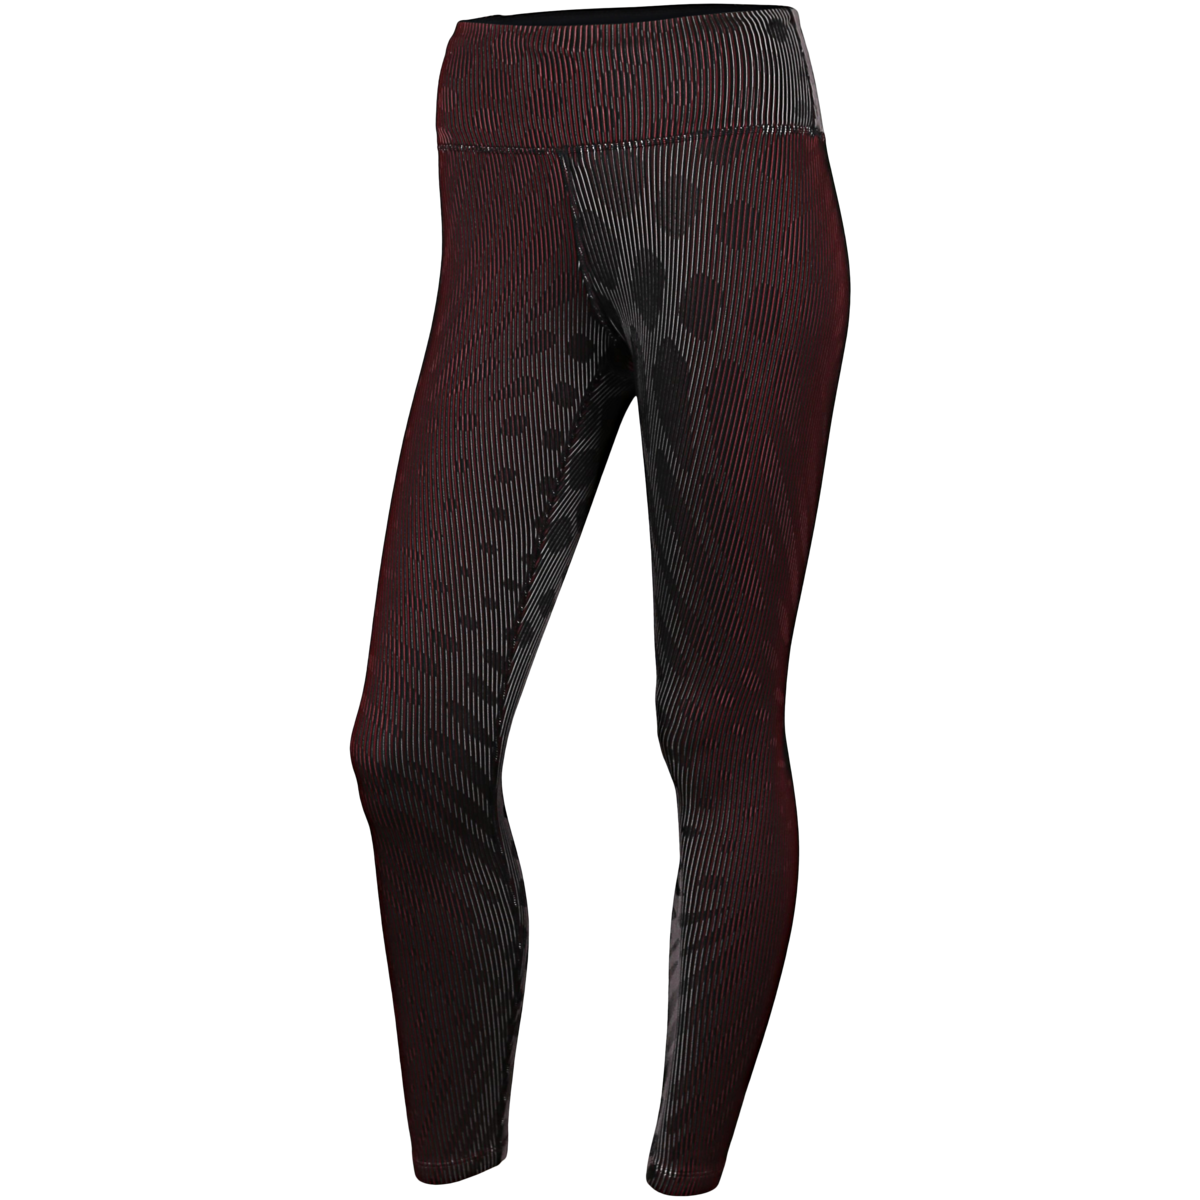 Nike - Epic Luxe Run Division 7/8 Tights - Sort